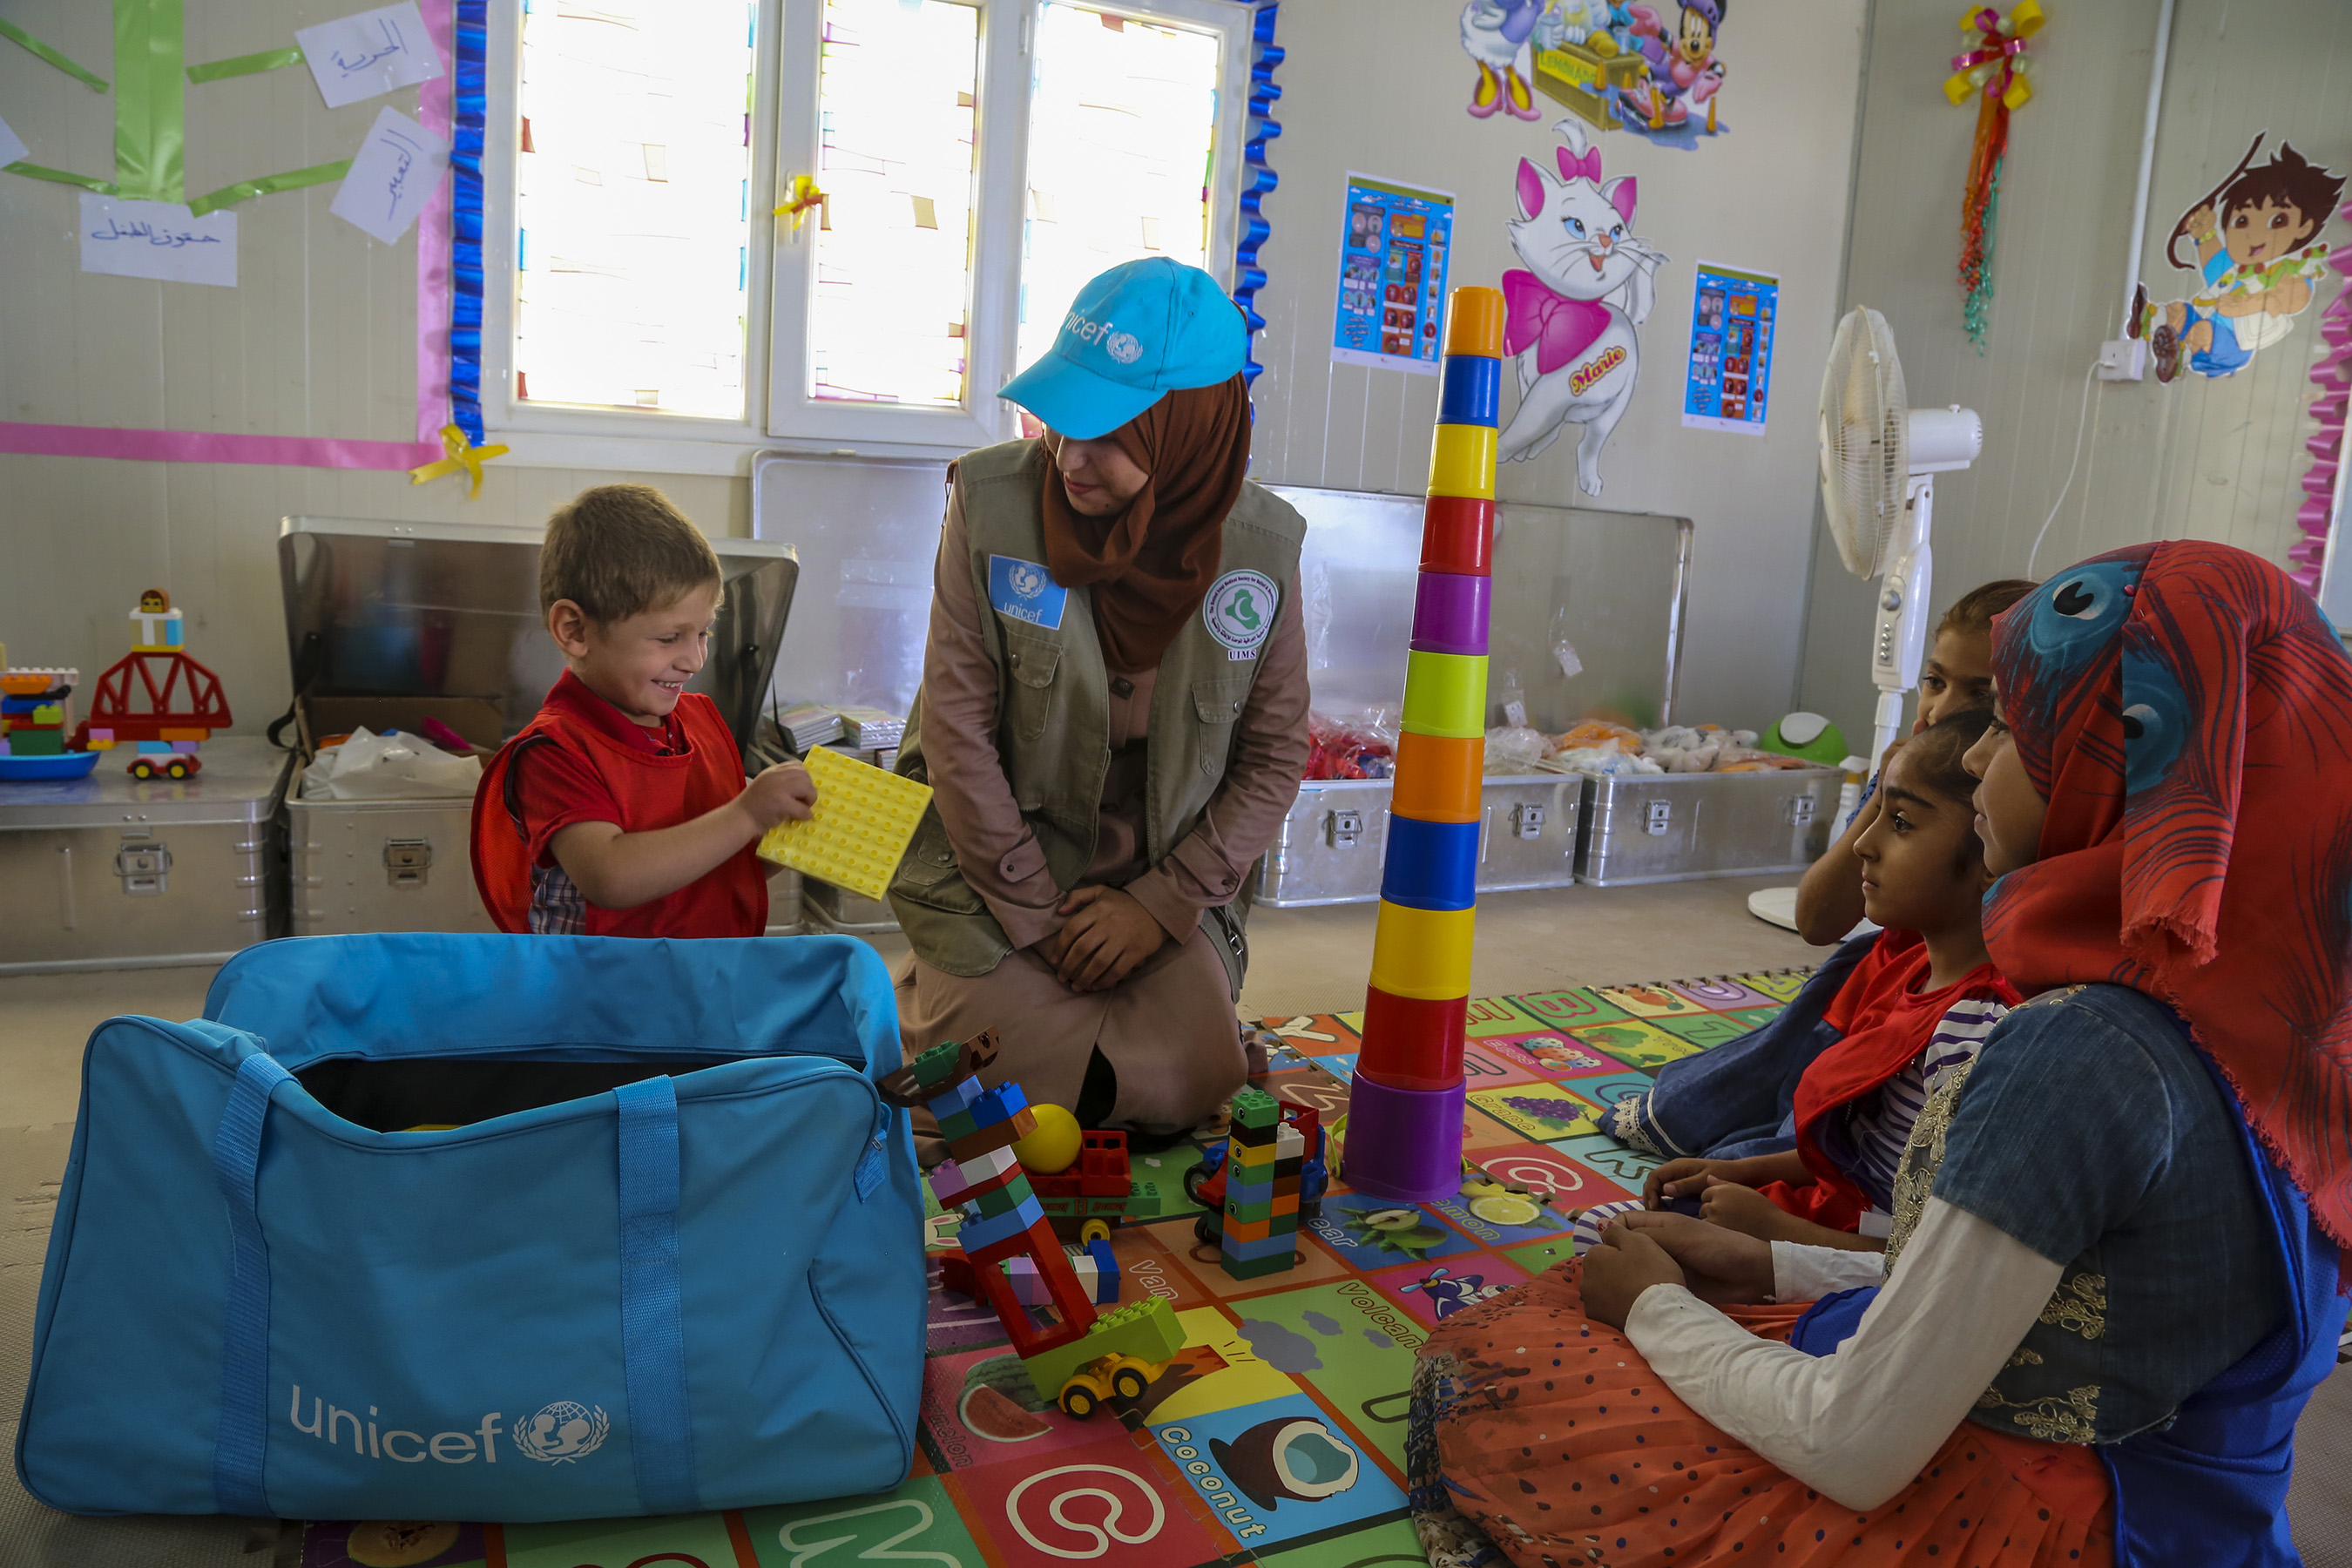 UNICEF interacts with children in Child Friendly Spaces to help them learn, thrive and reconnect with one another | Credit: ©UNICEFUN049380Khuzaie